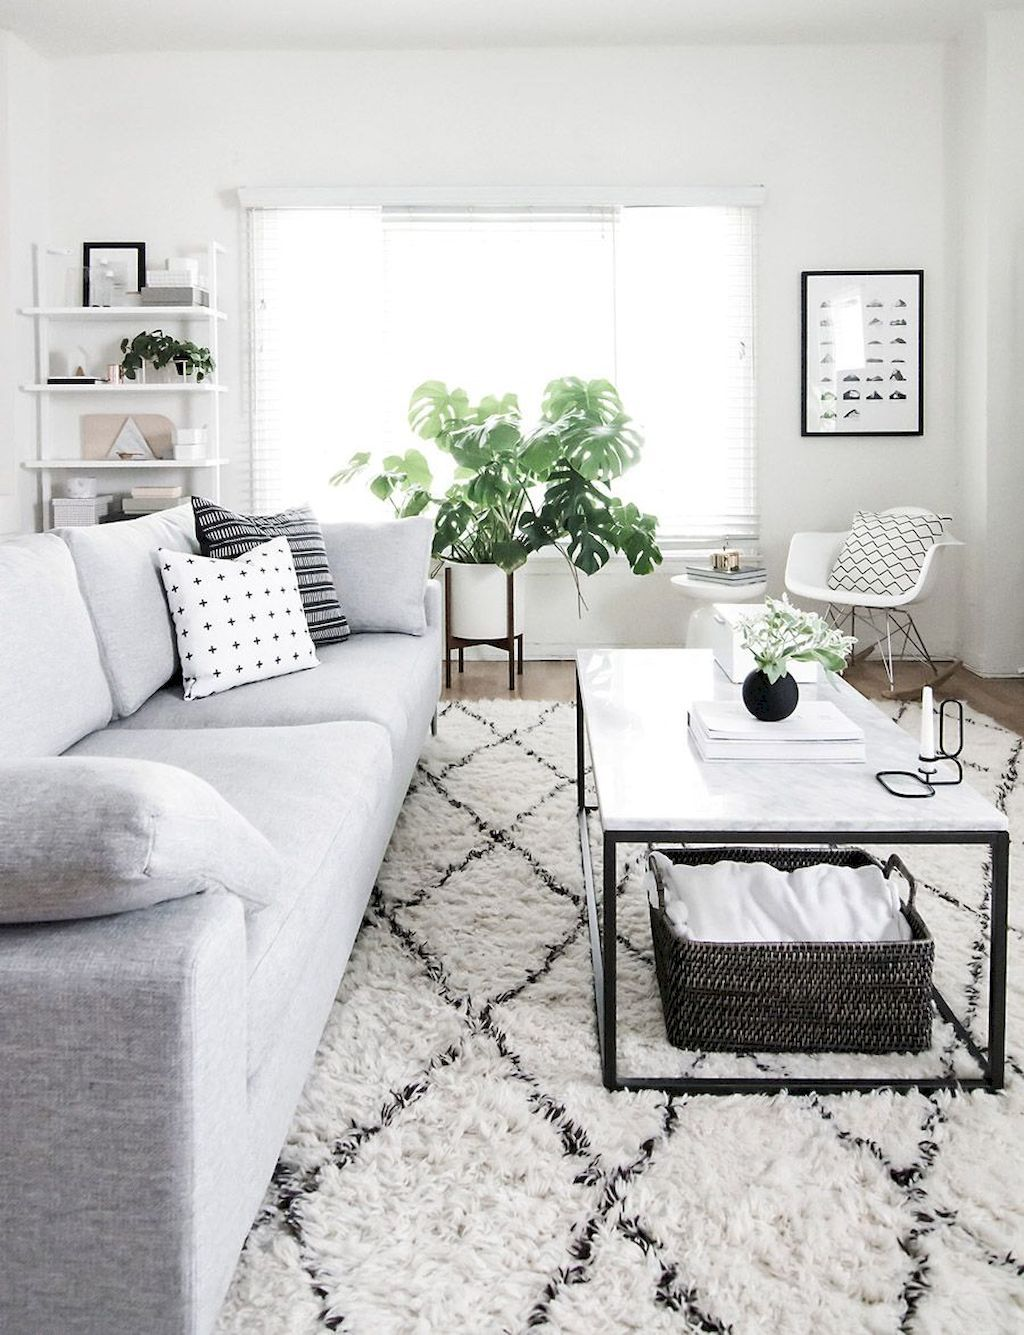 85 Small Apartment Living Room Decor Ideas | Apartment living, Small ...